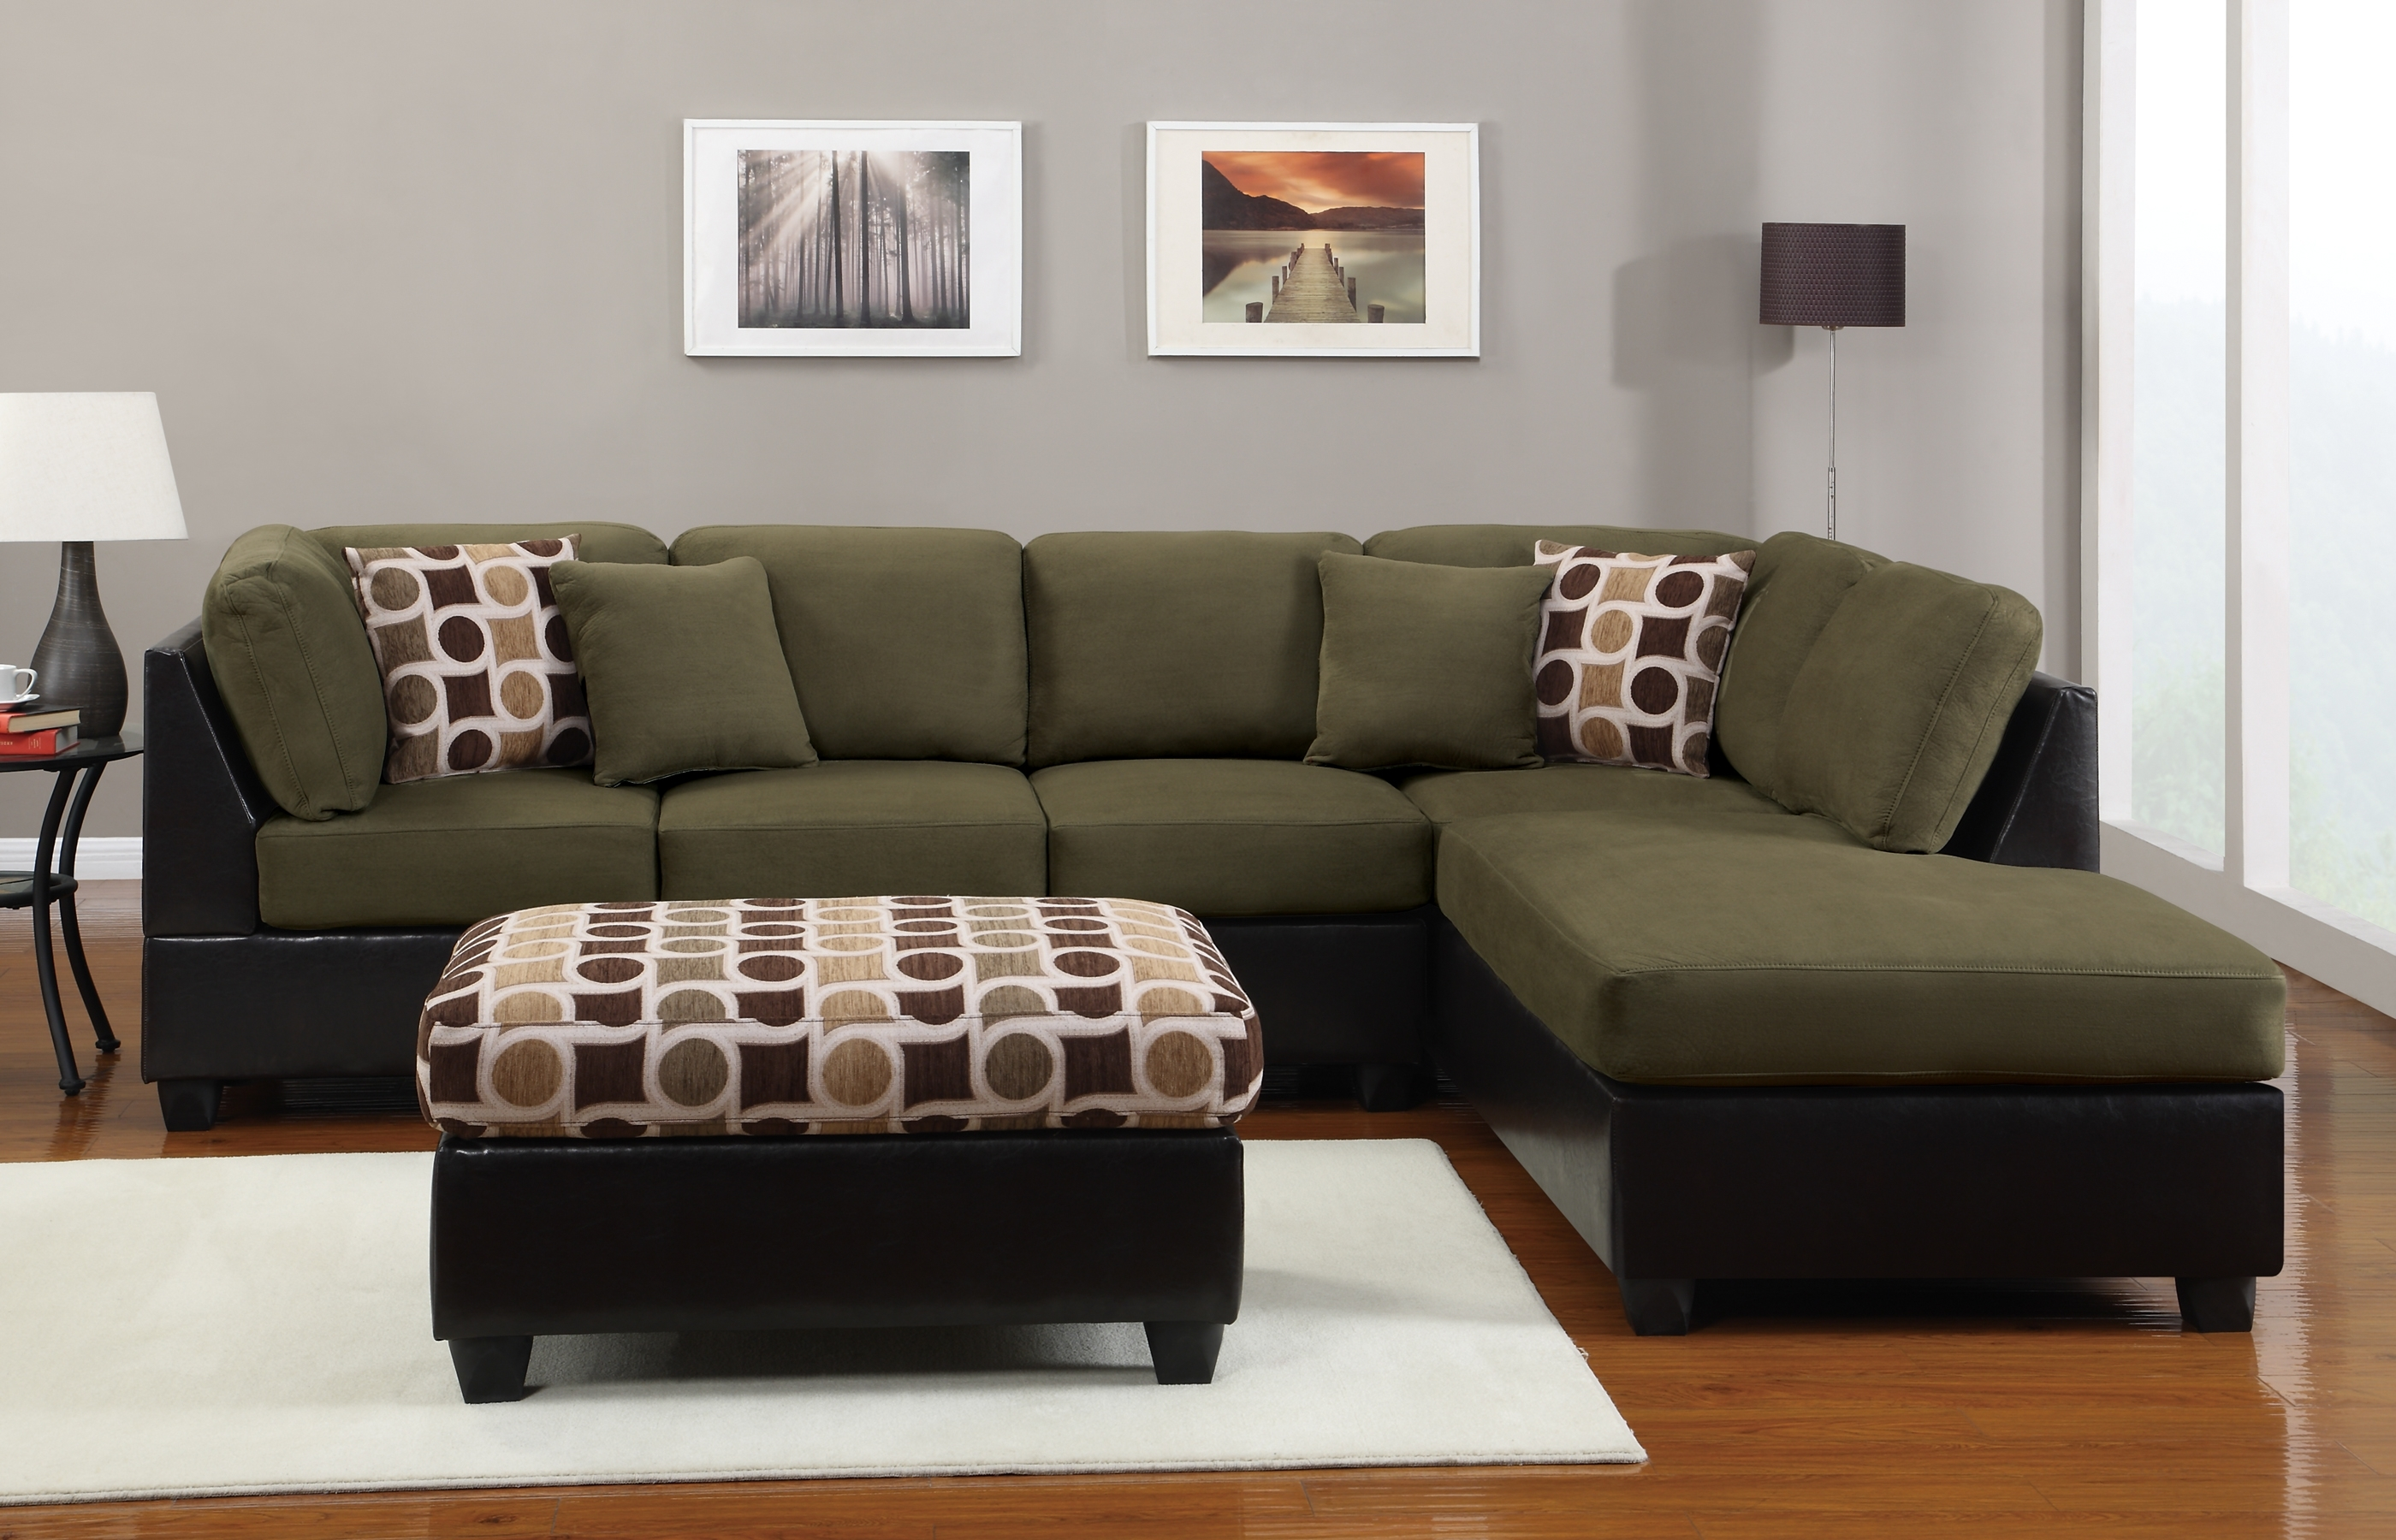 Well Known Green Sectional Sofas With Chaise For Espresso Leather Sectional Sofa With Right Chaise Lounge Using (View 18 of 20)